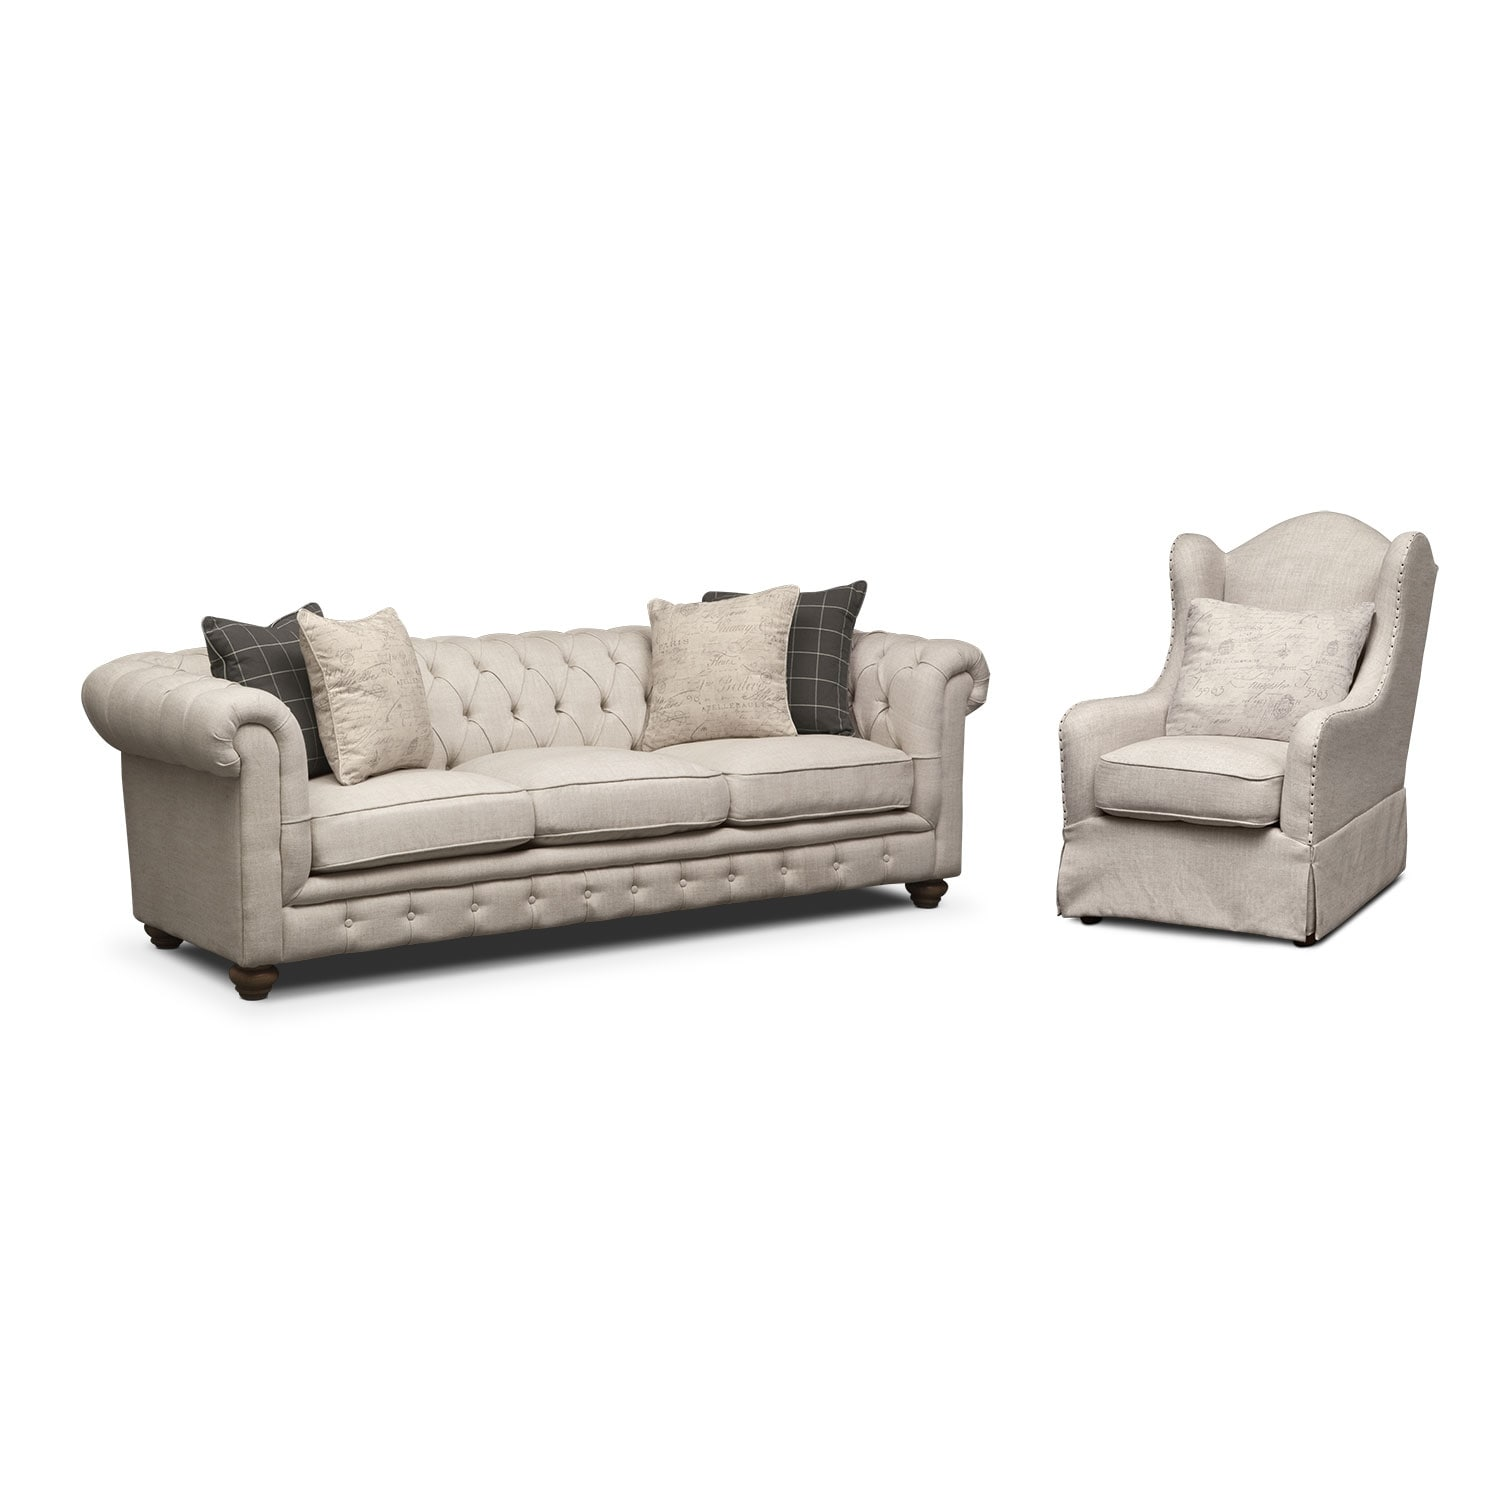 Madeline Sofa and Accent Chair Set - Beige